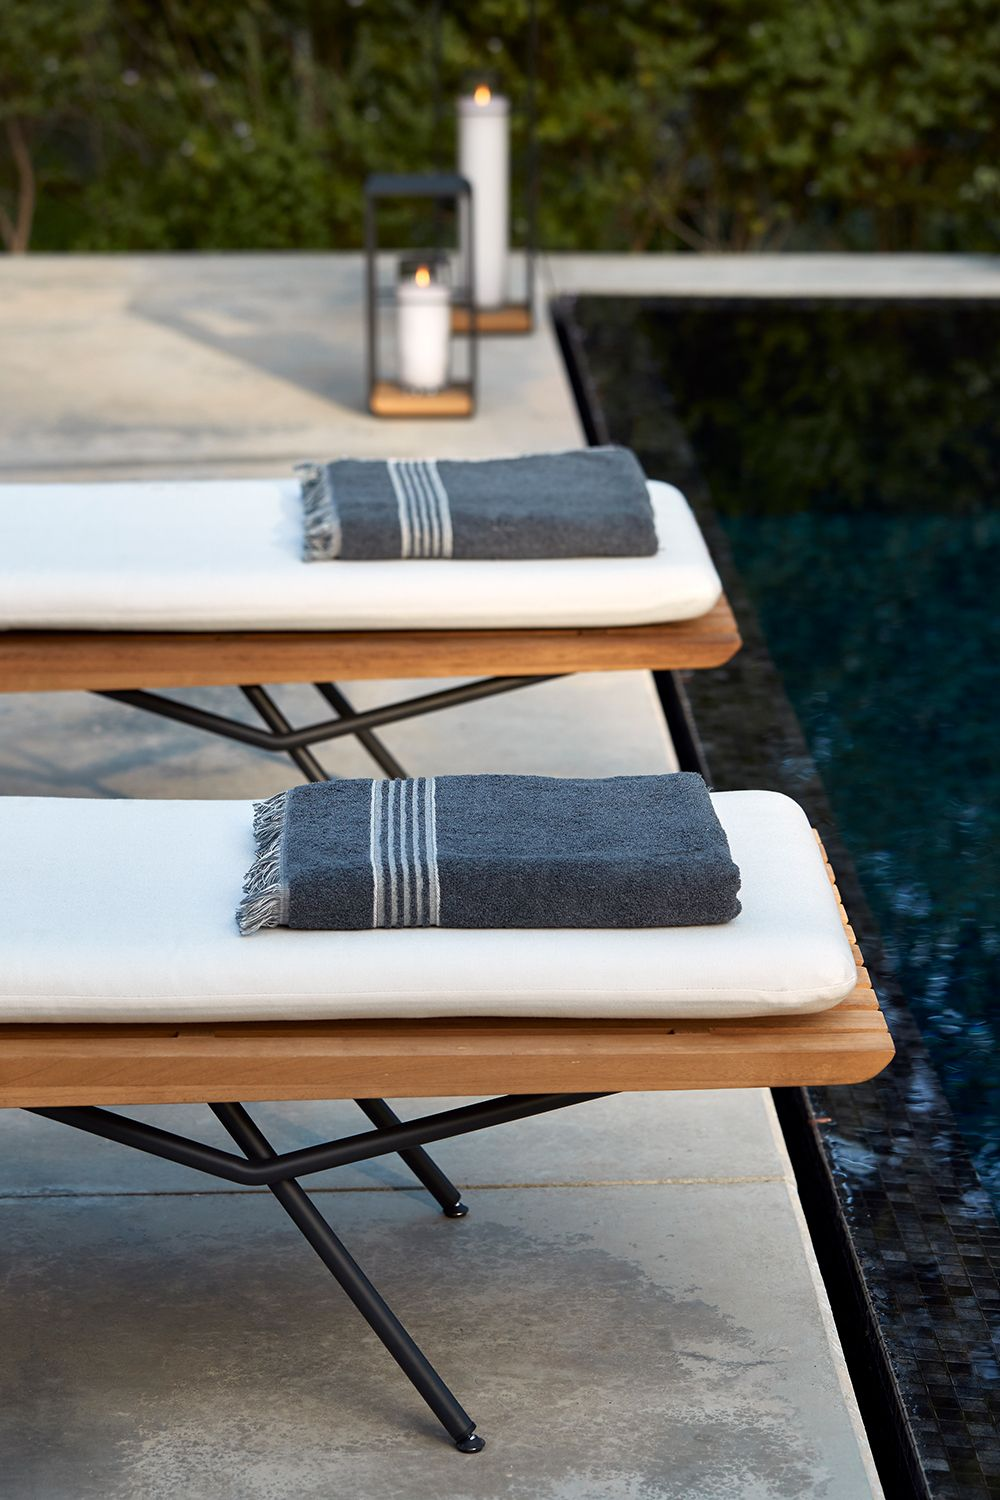 japanese patio furniture. Outdoor Lounger SAN By Lionel Doyen For Manutti. Modular Sofa Concept. Japanese Style. Patio Furniture